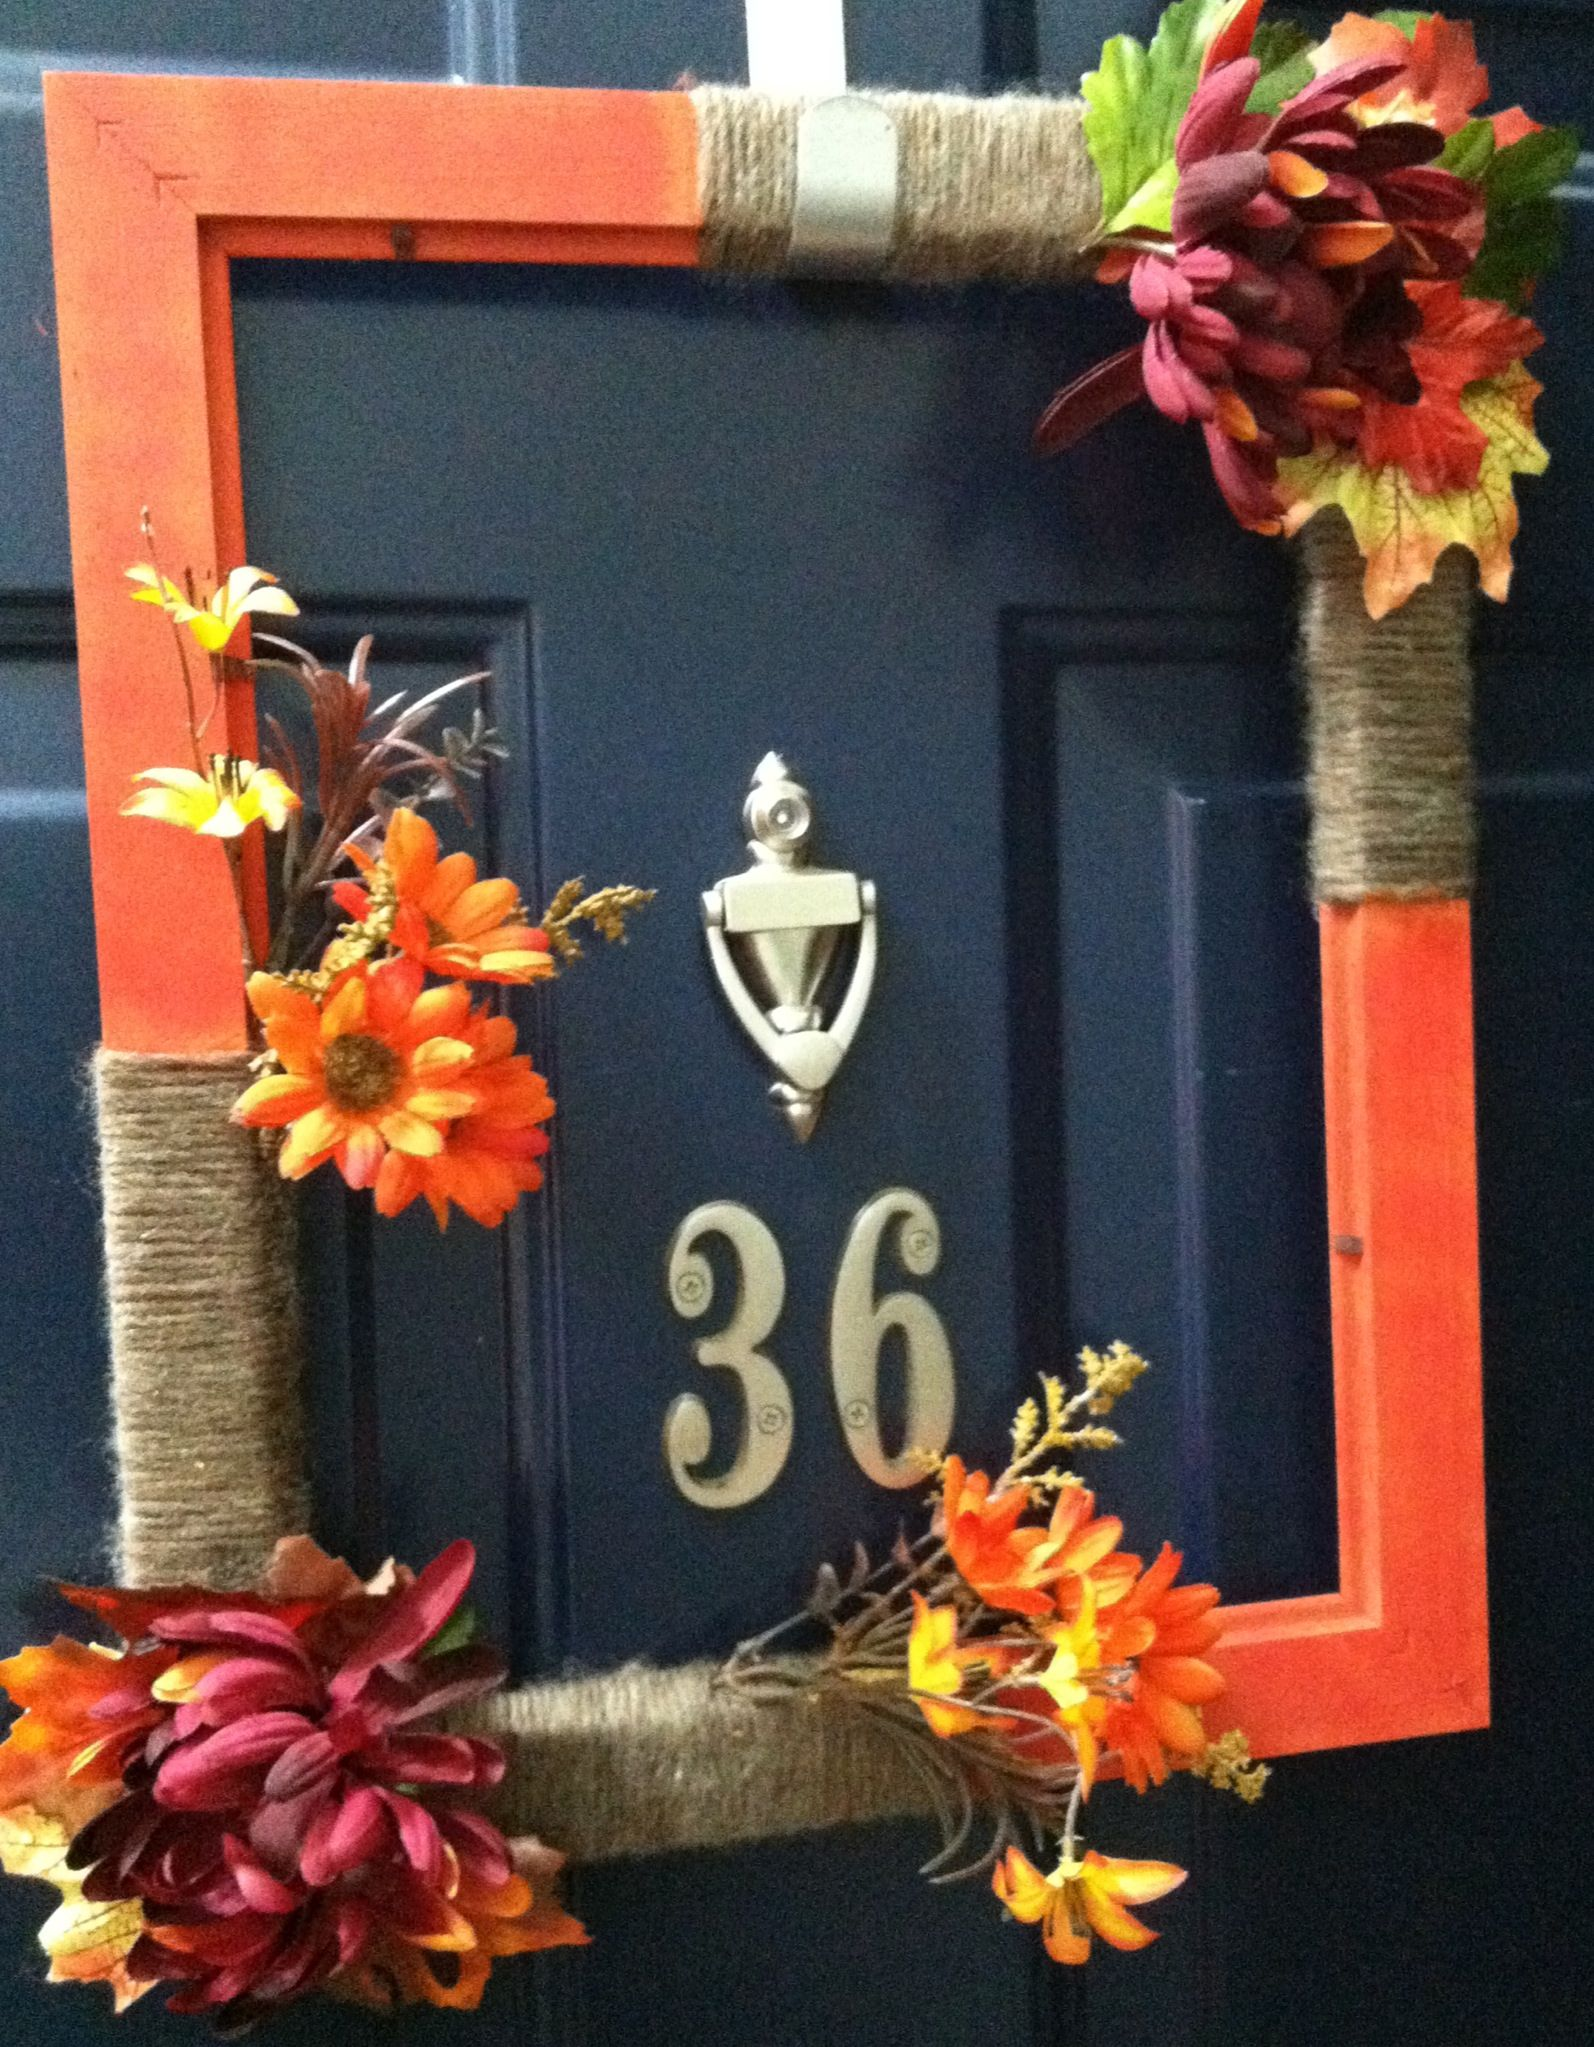 I finally finished my DIY fall wreath using a picture